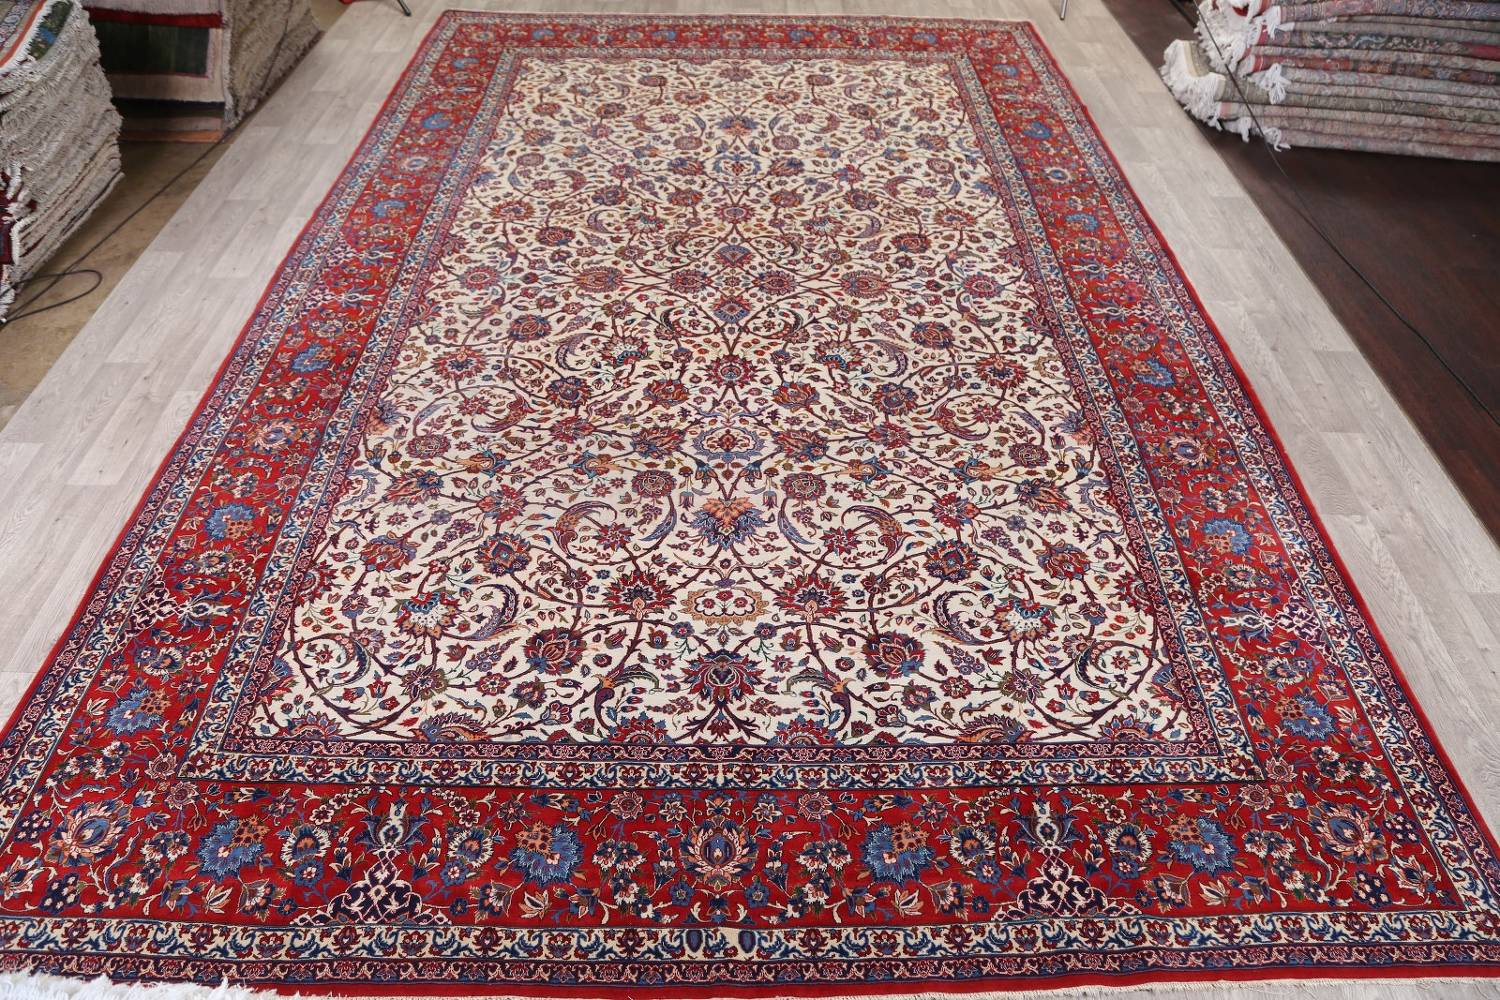 Antique Floral 10x16 Isfahan Persian Area Rug image 19